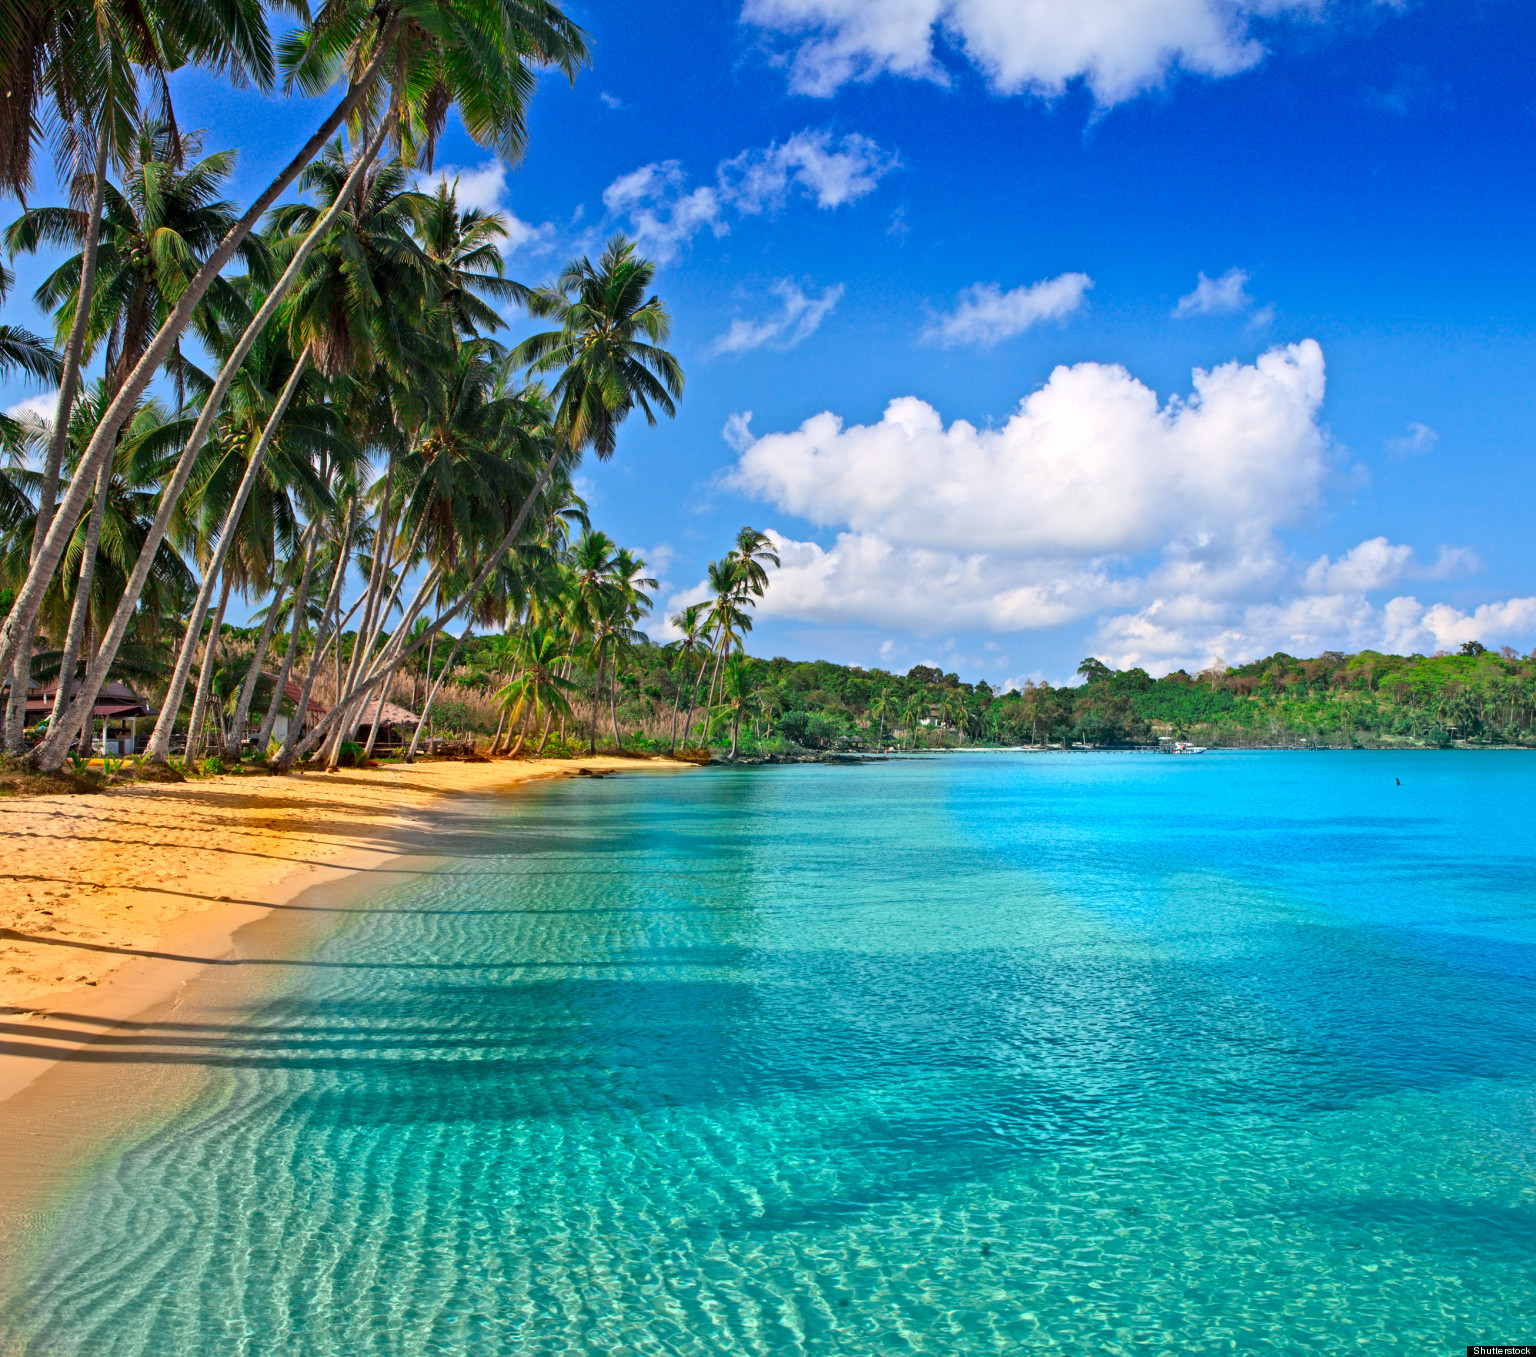 The 11 Sexiest Beaches In The World (PHOTOS